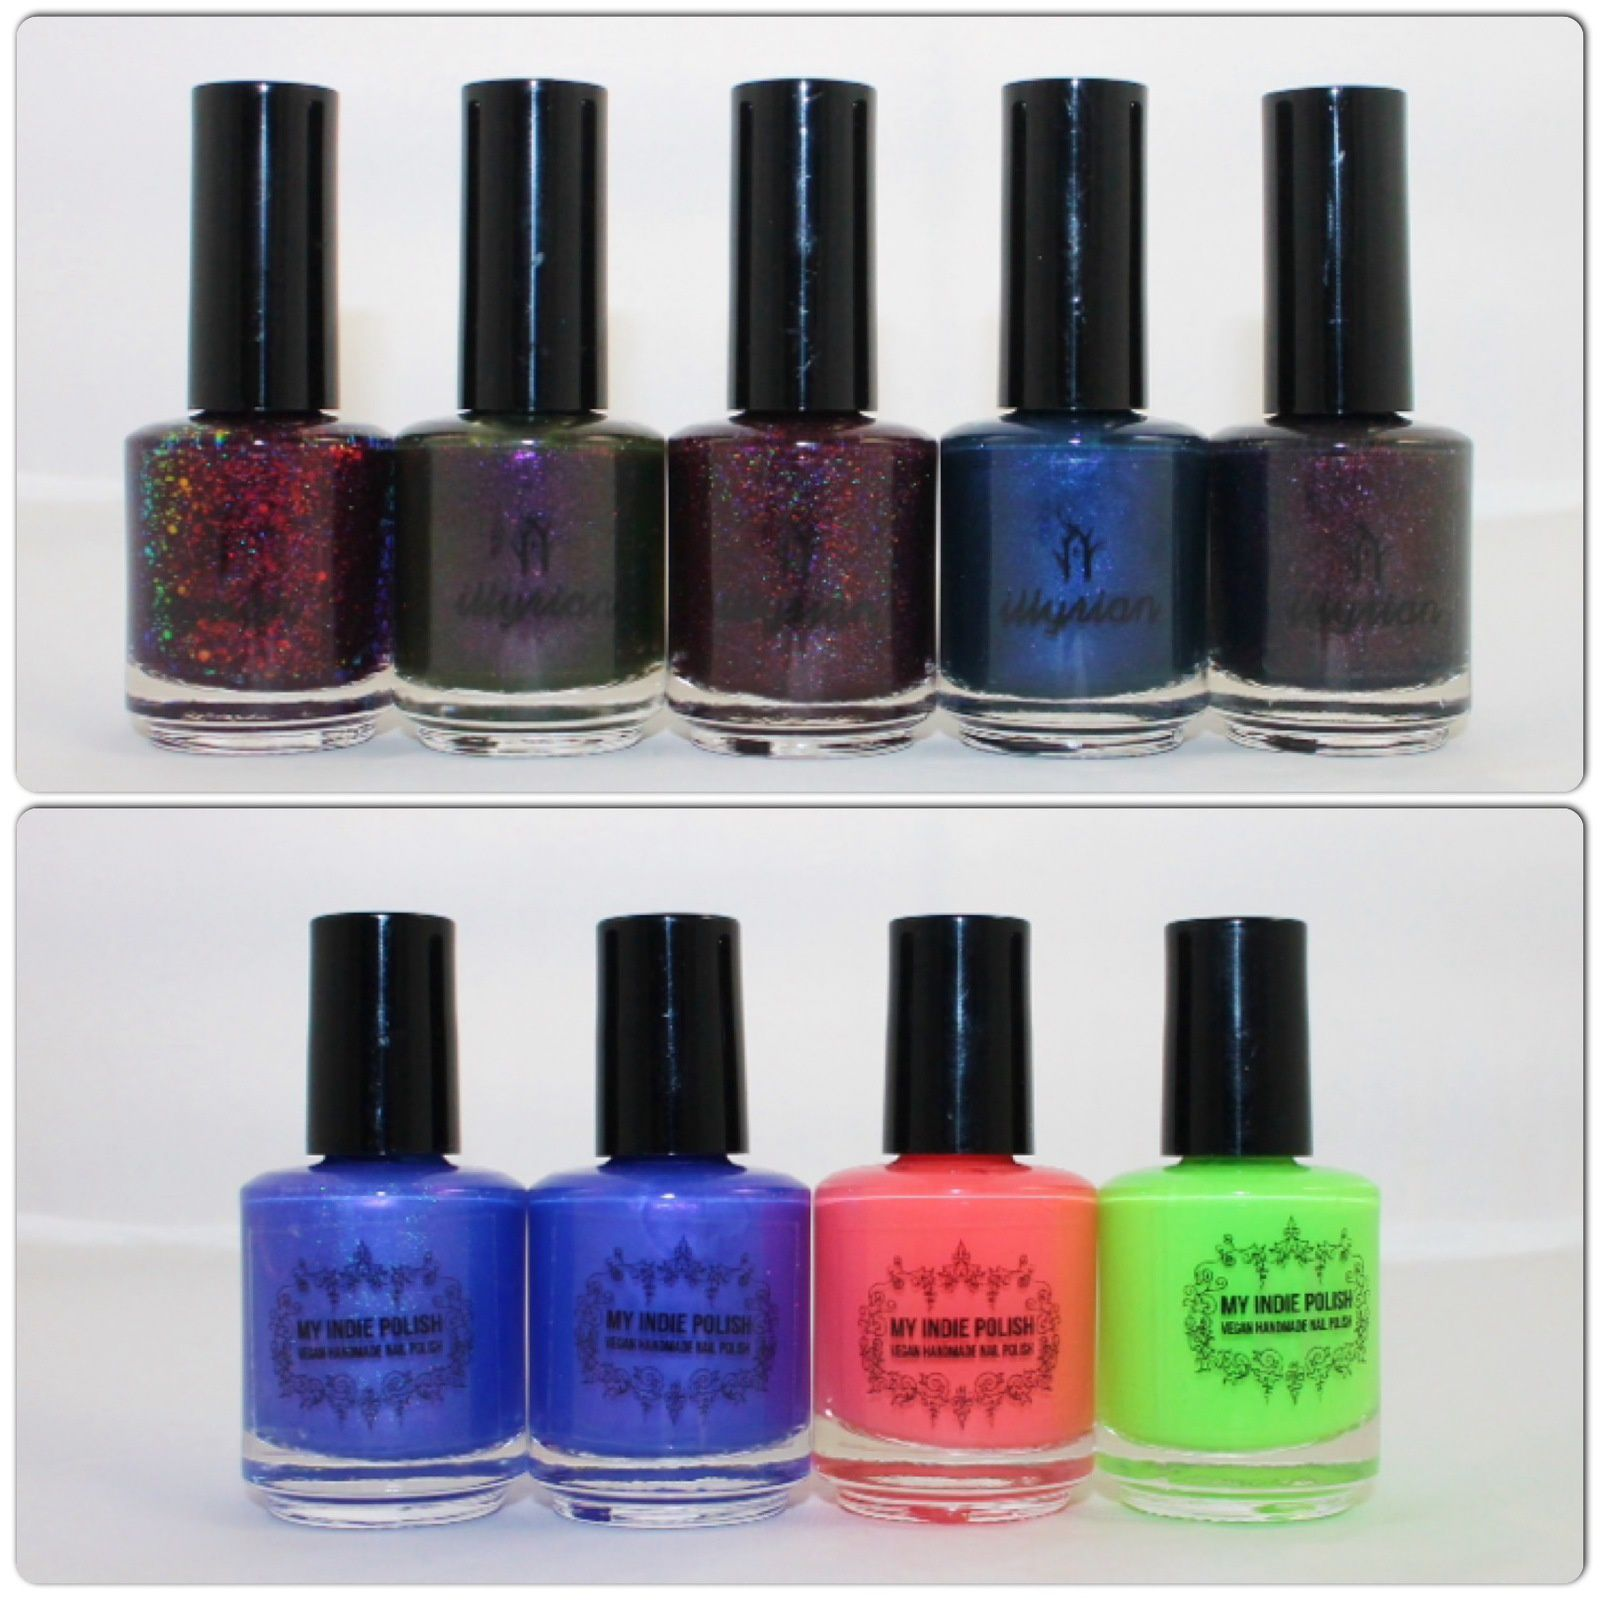 Illyrian Polish Eleven, I'm the Monster, Love Gun, Mouth Breather, Demogordon. My Indie Polish Dream Collector, Serenity, Neon Coral, Neon Lime.